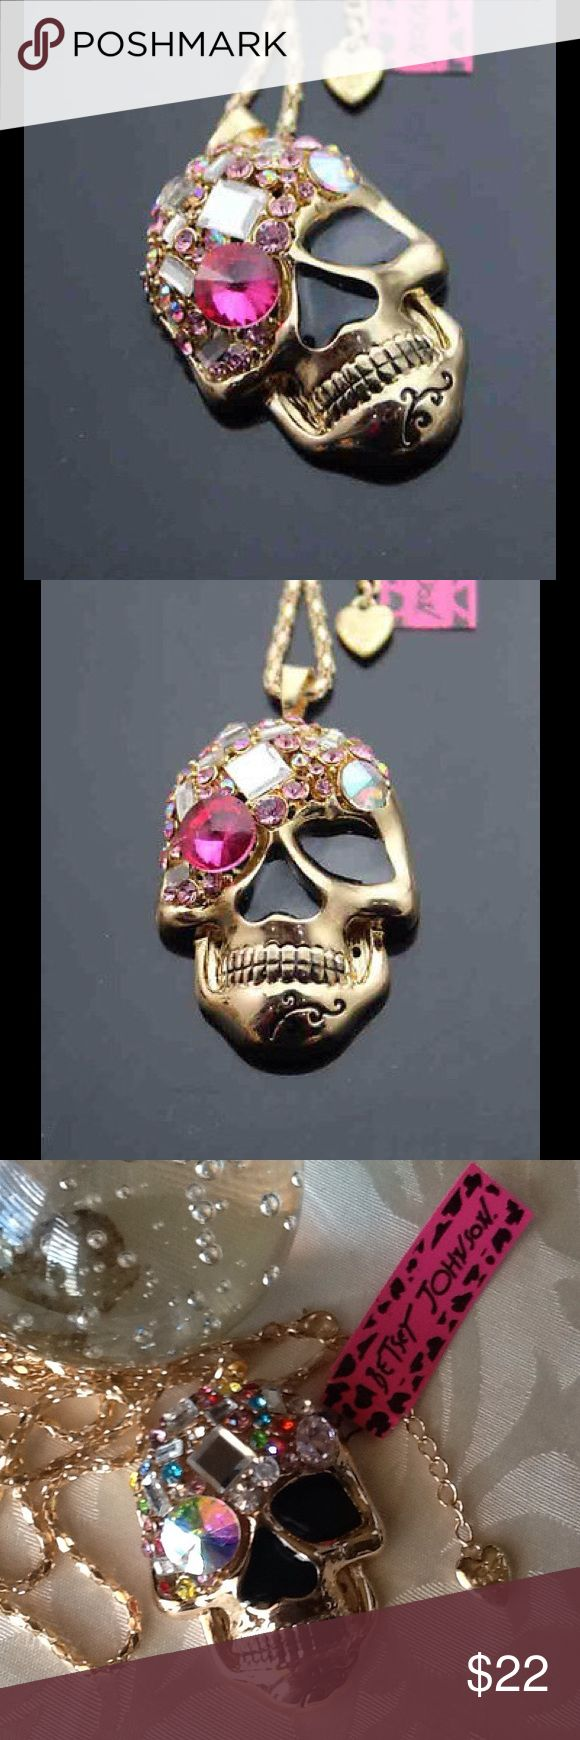 """UNIQUE  &  FUN    NECKLACE   ASSORTED COLORED INLAY CRYSTALS SUGAR SKULL PENDANT NECKLACE # D673F.  NWT.    NEVER WORN AND IN ORIGINAL PACKAGING.    CHAIN LENGTH  APPROX. 28"""" LONG. ⛓   MAKES A UNIQUELY FUN GIFT!  Betsey Johnson Jewelry Necklaces"""